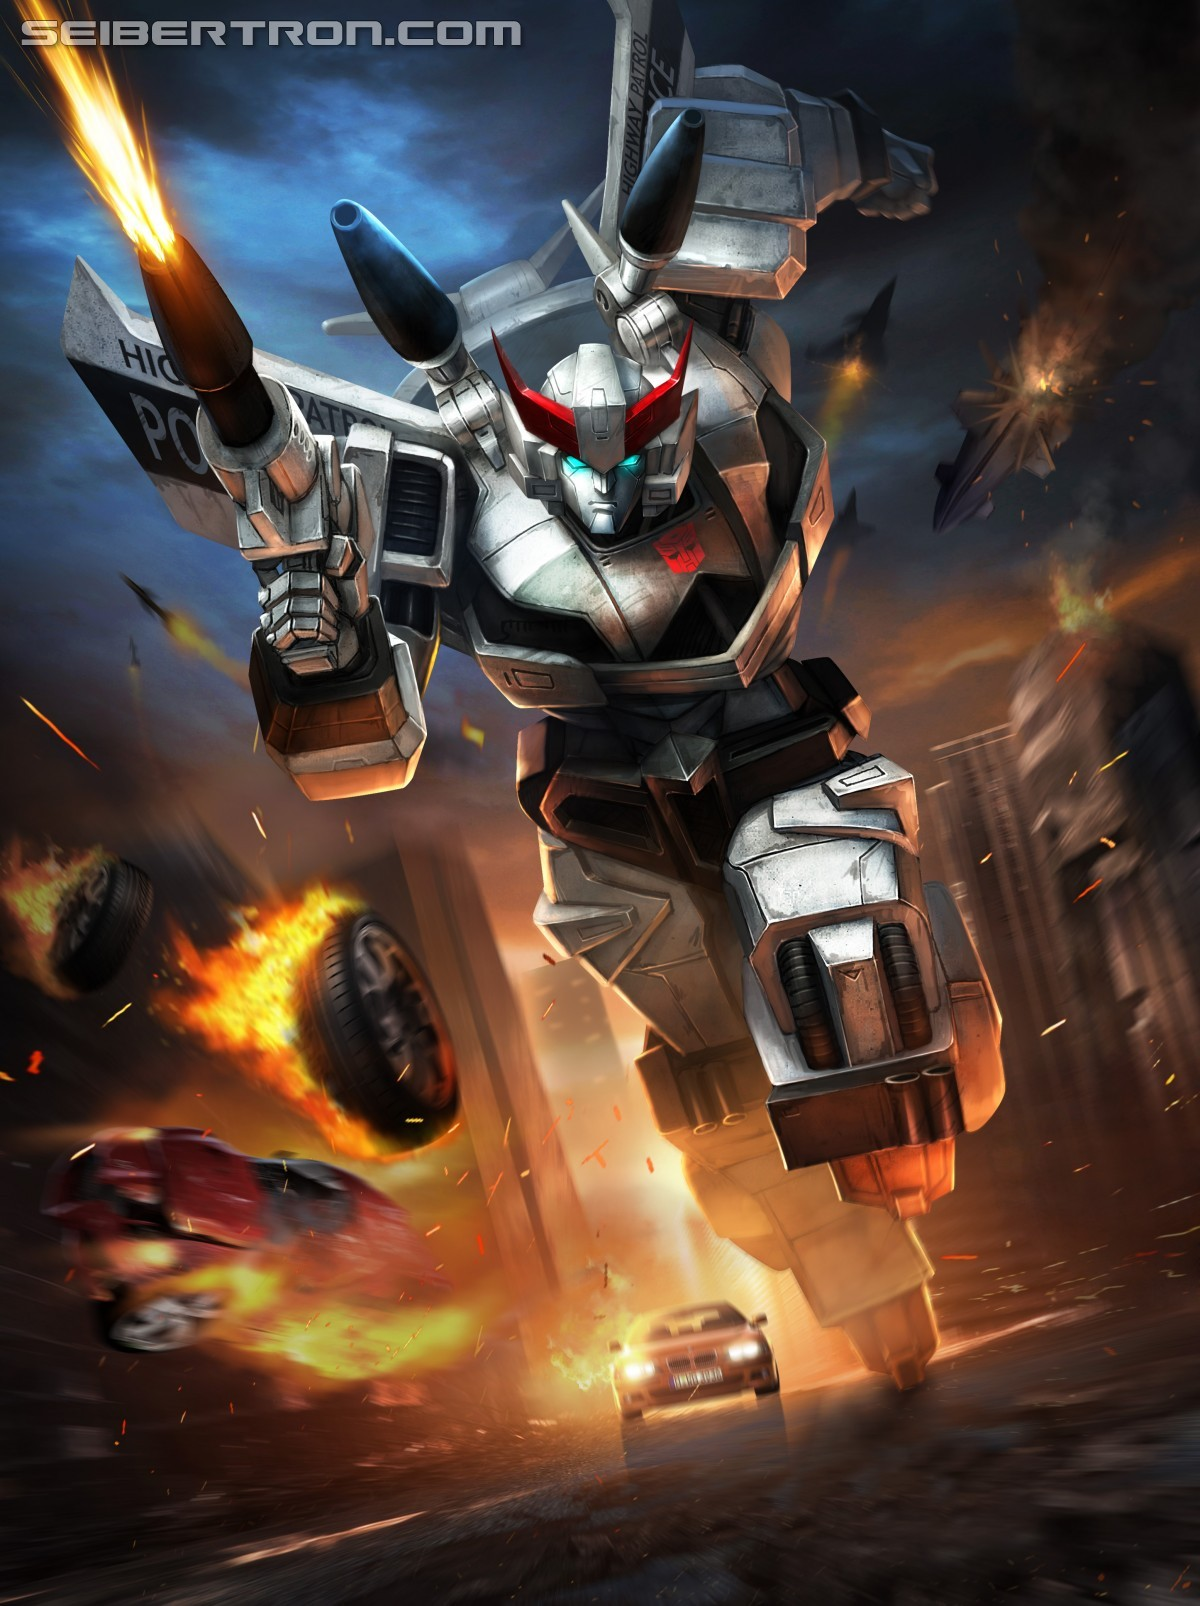 Download the transformers game for free